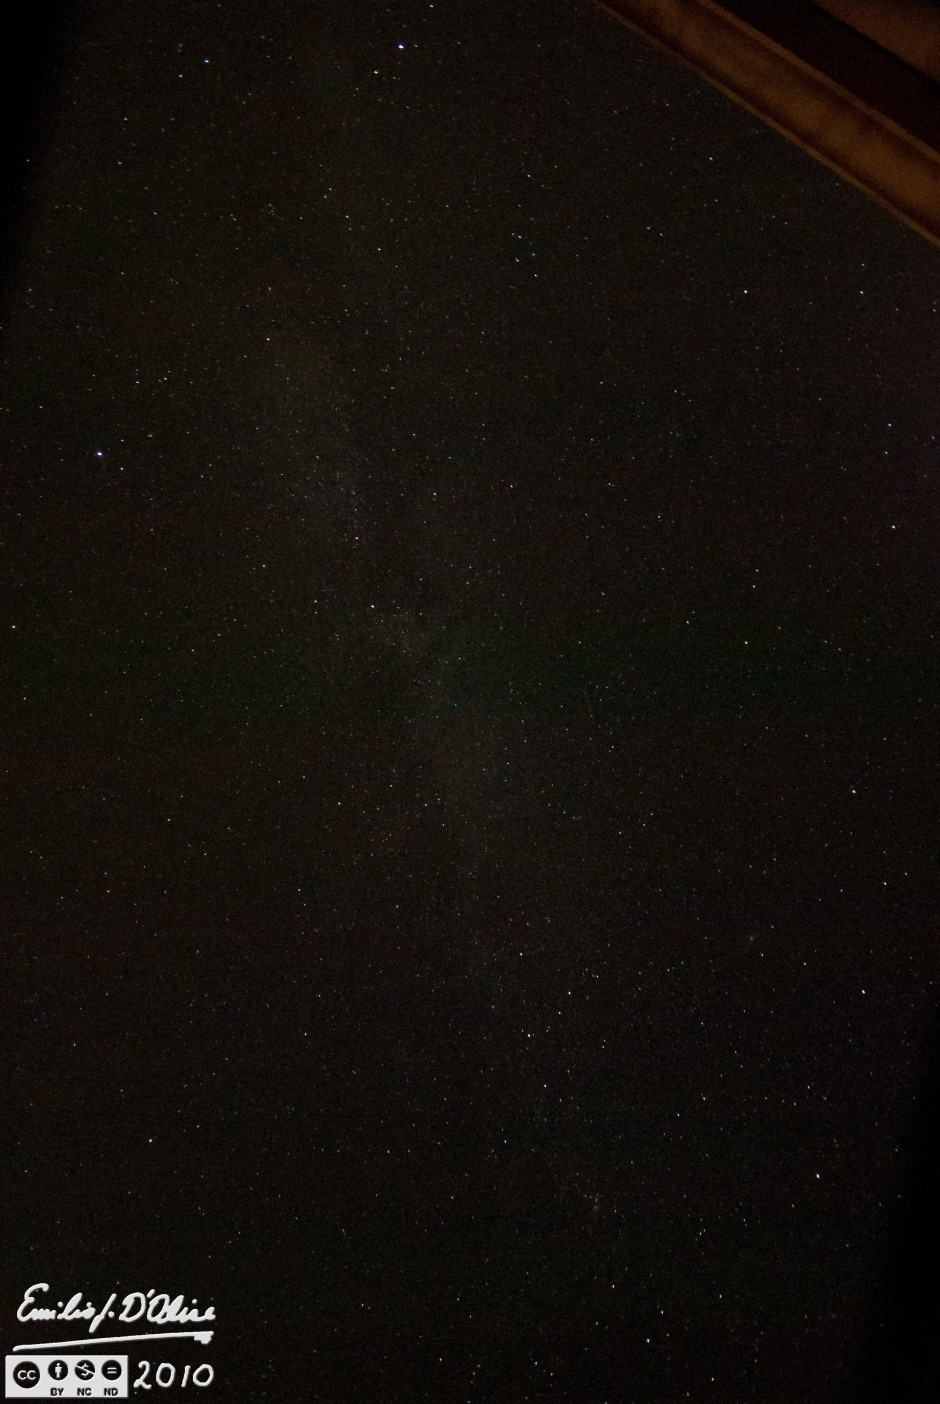 Shot straight up - the Milky Way